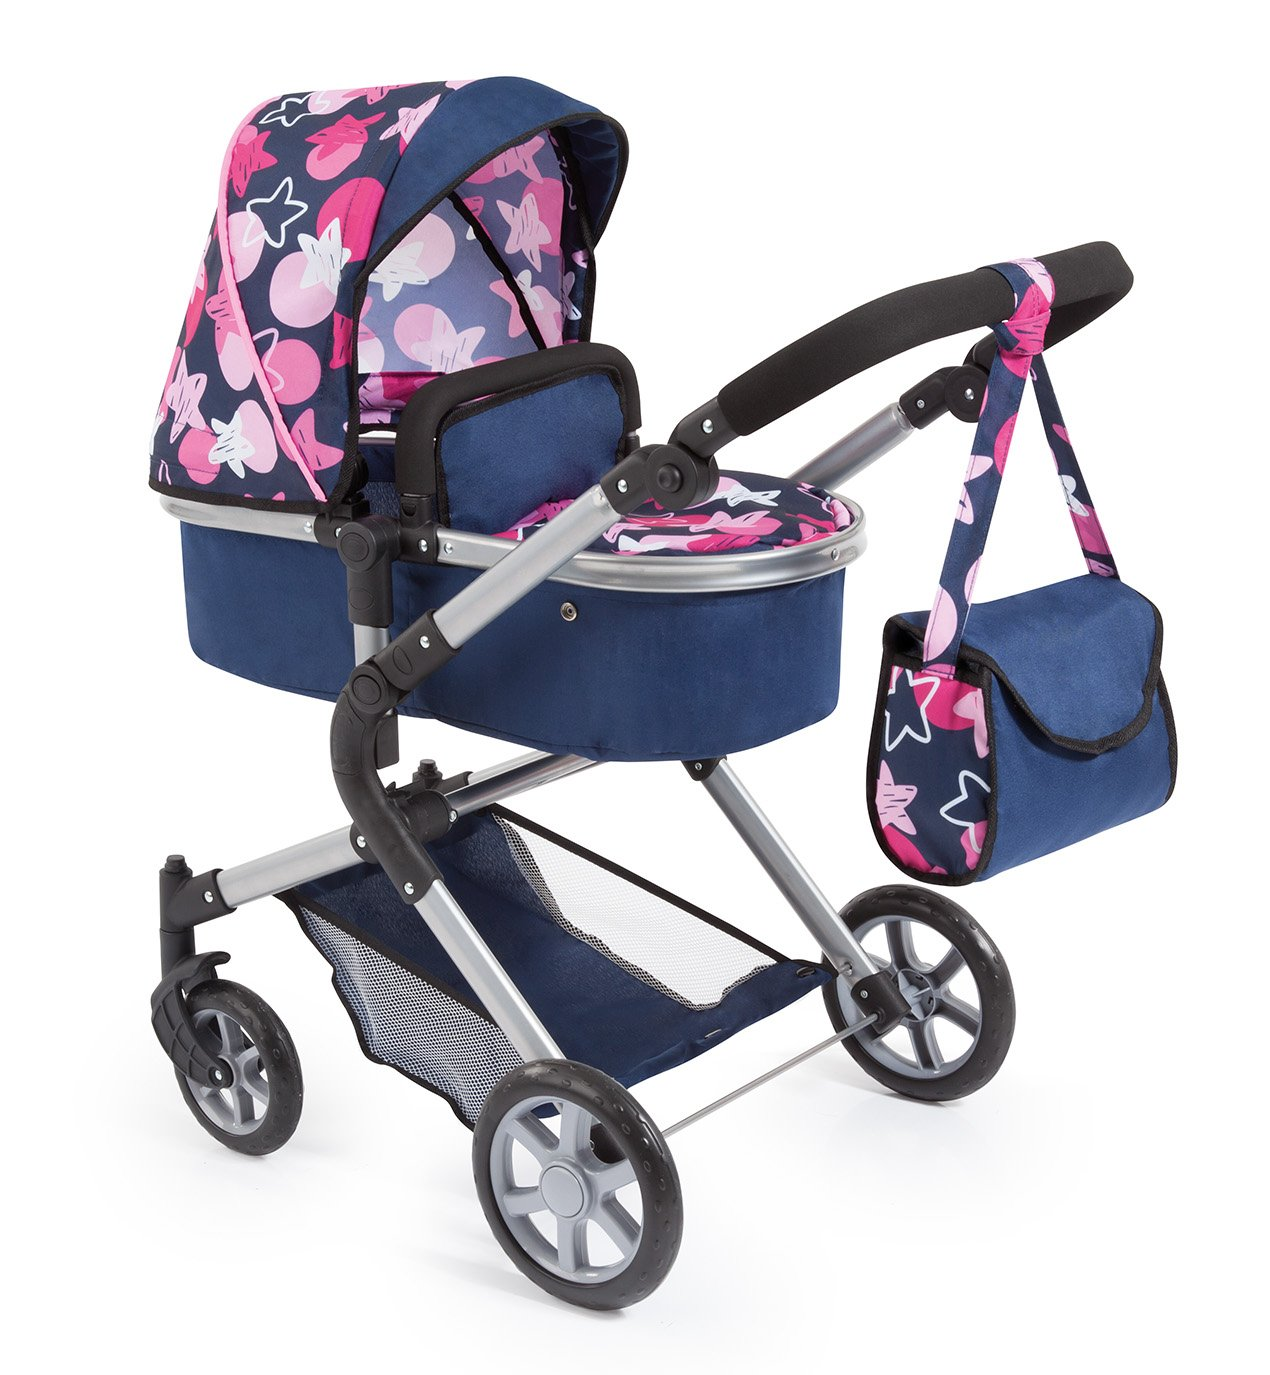 Amazon.com: Bayer Design 18169AA Dolls Pram City Neo with Changing Bag and Underneath Shopping Basket, Convertable to a Pushchair, Blue/Pink: Toys & Games